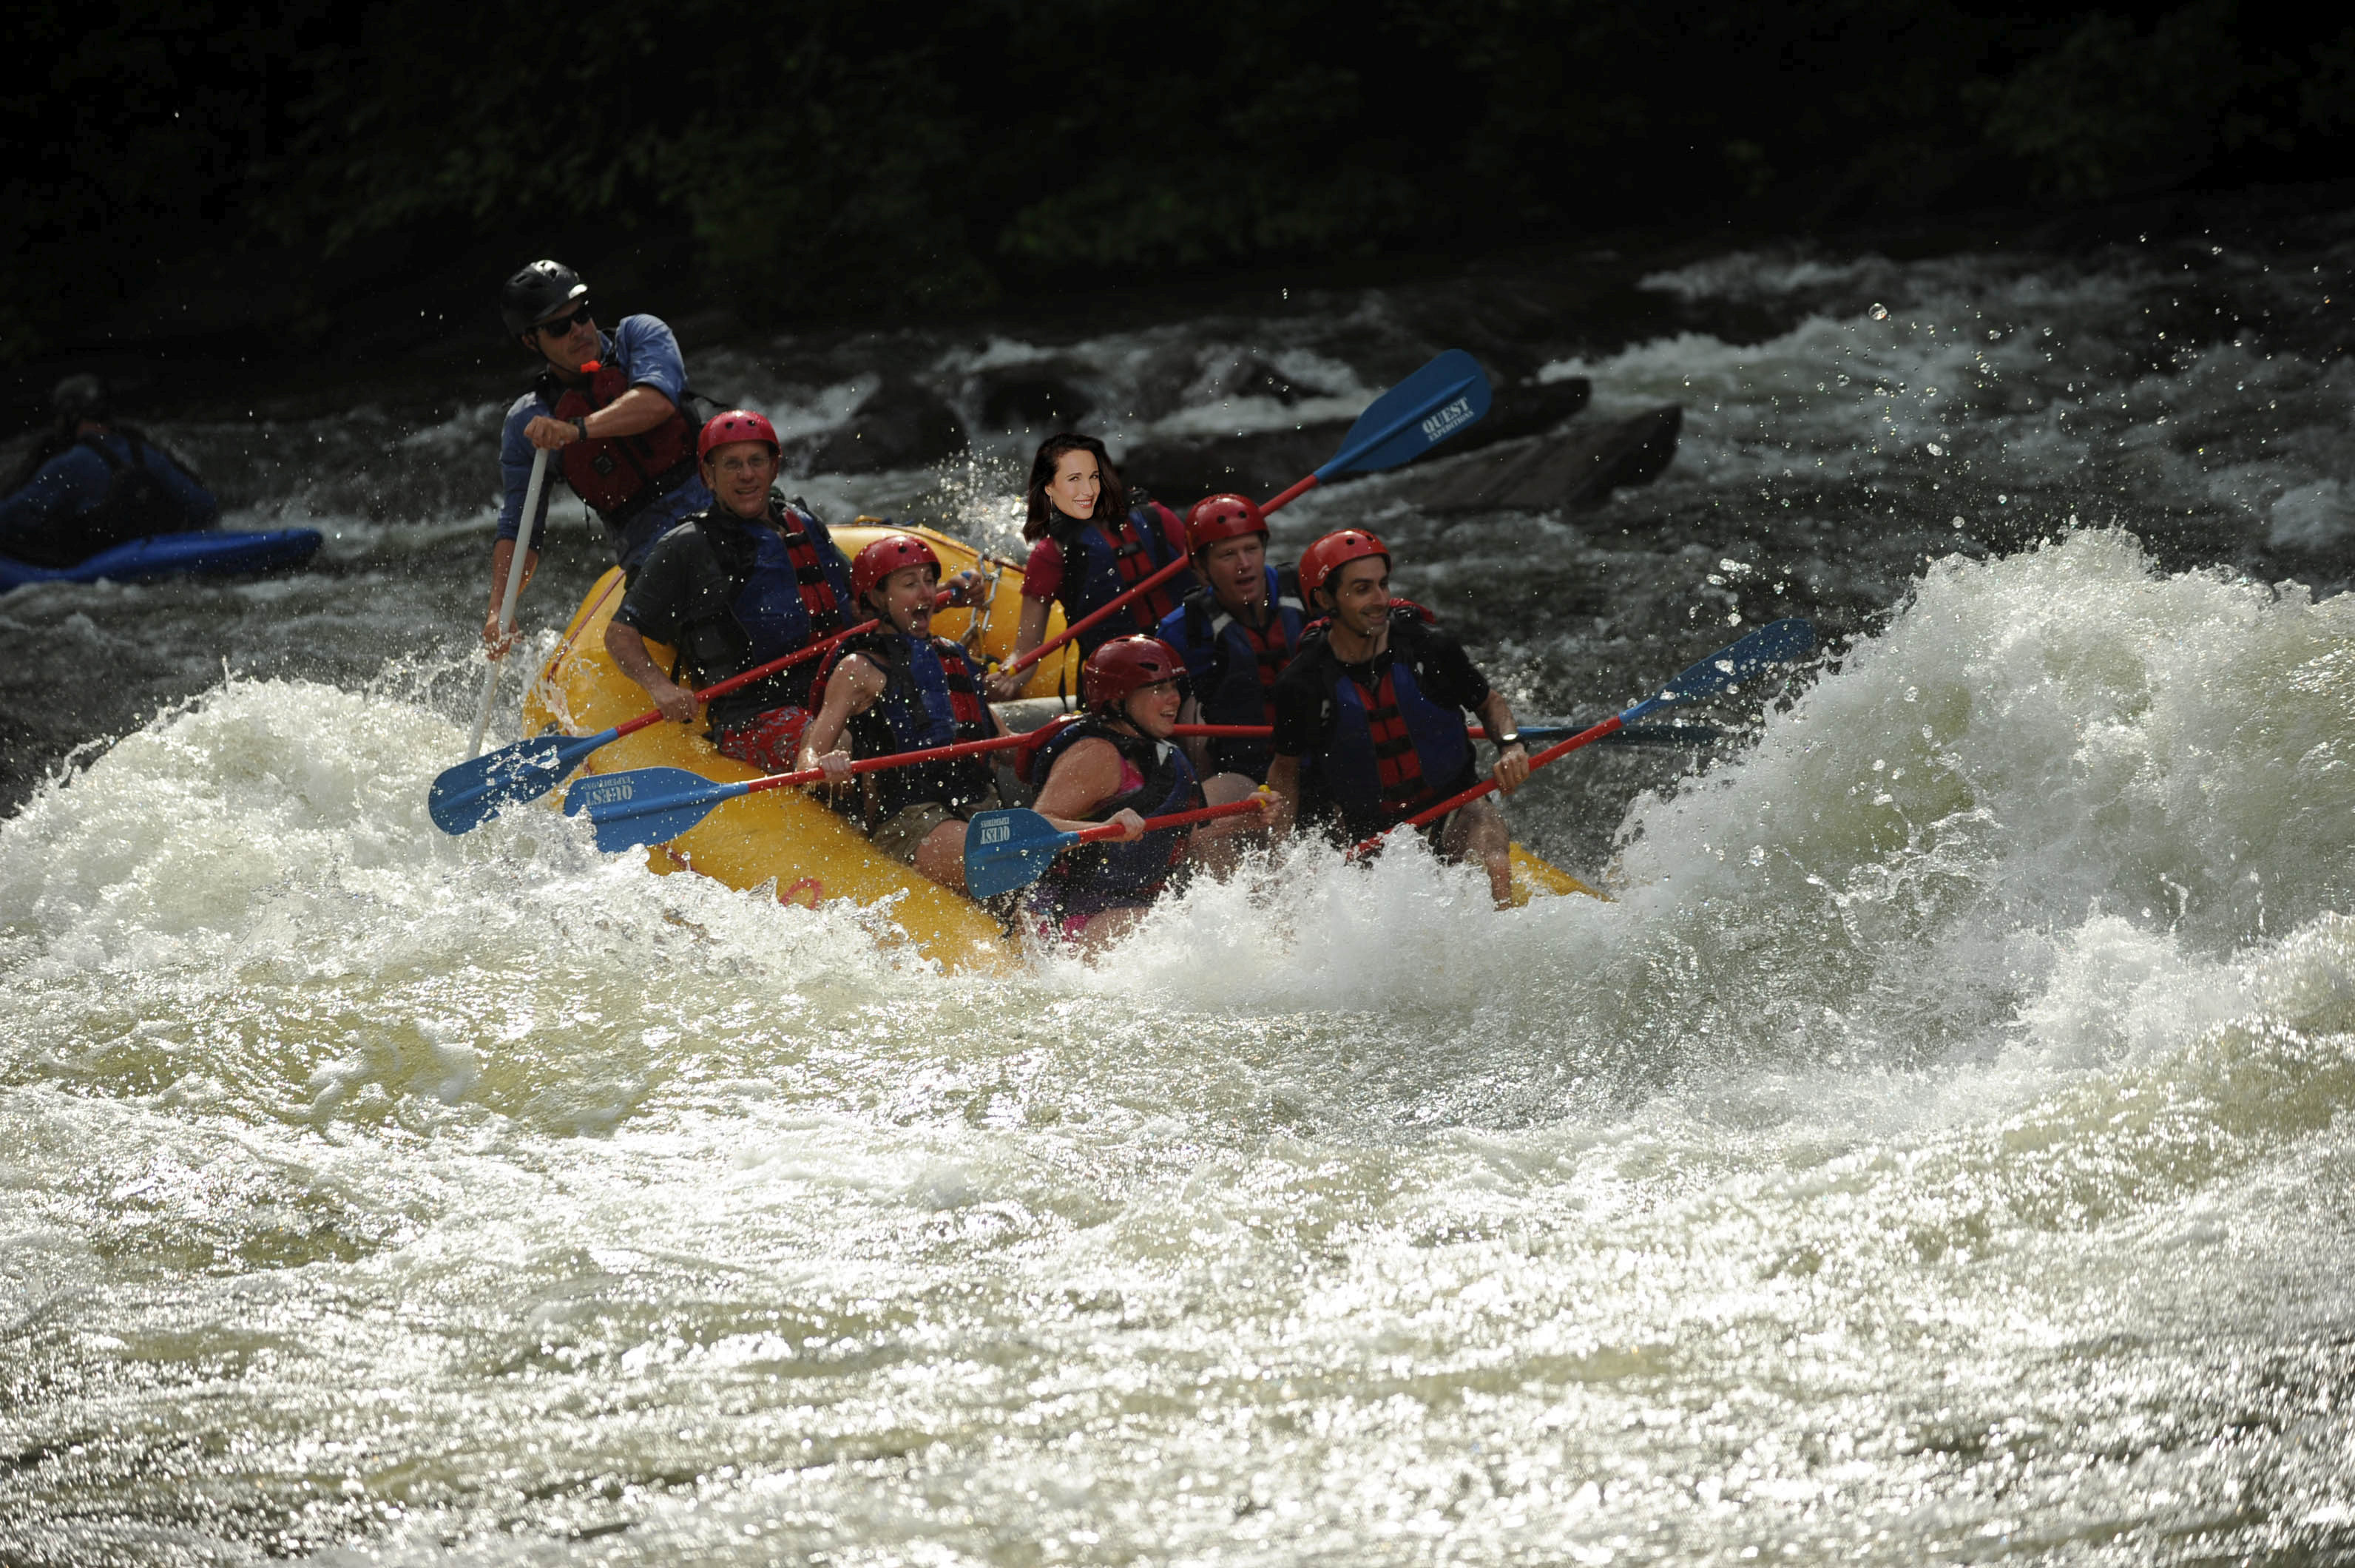 whitewater rafting middle Ocoee photoshopped